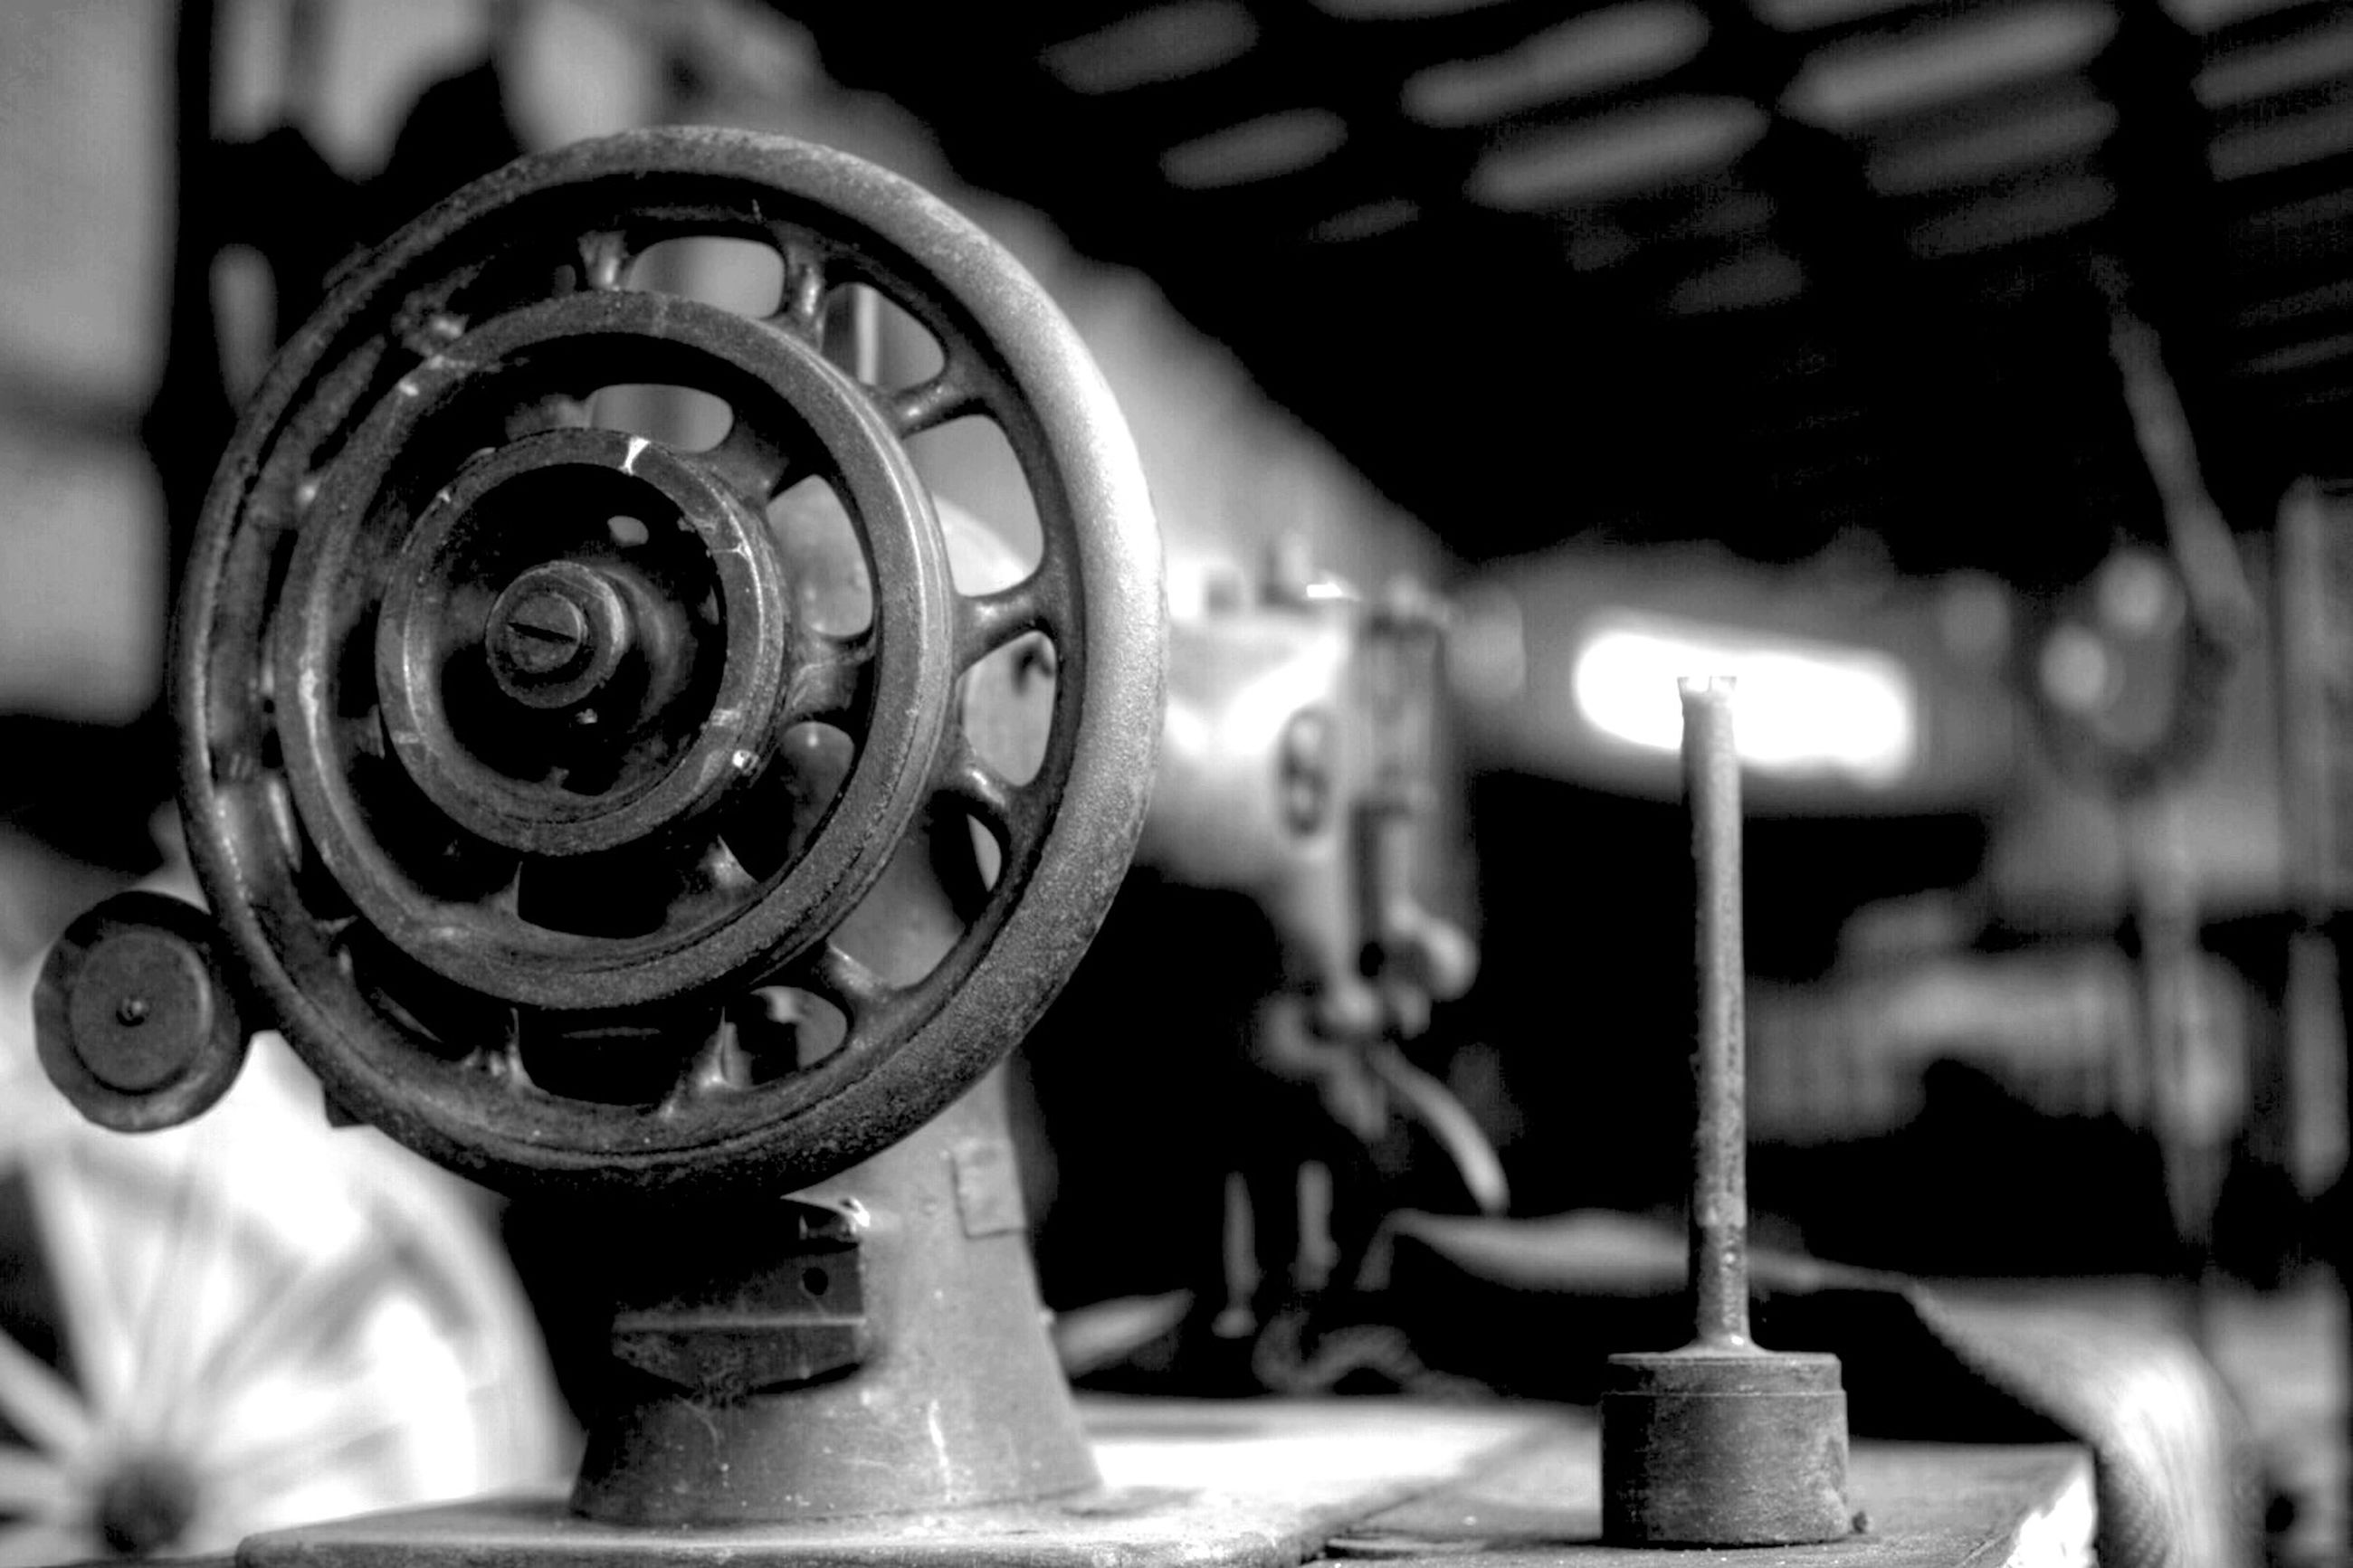 metal, focus on foreground, close-up, indoors, machine part, technology, machinery, metallic, selective focus, old-fashioned, equipment, part of, industry, retro styled, old, no people, day, transportation, man made object, music